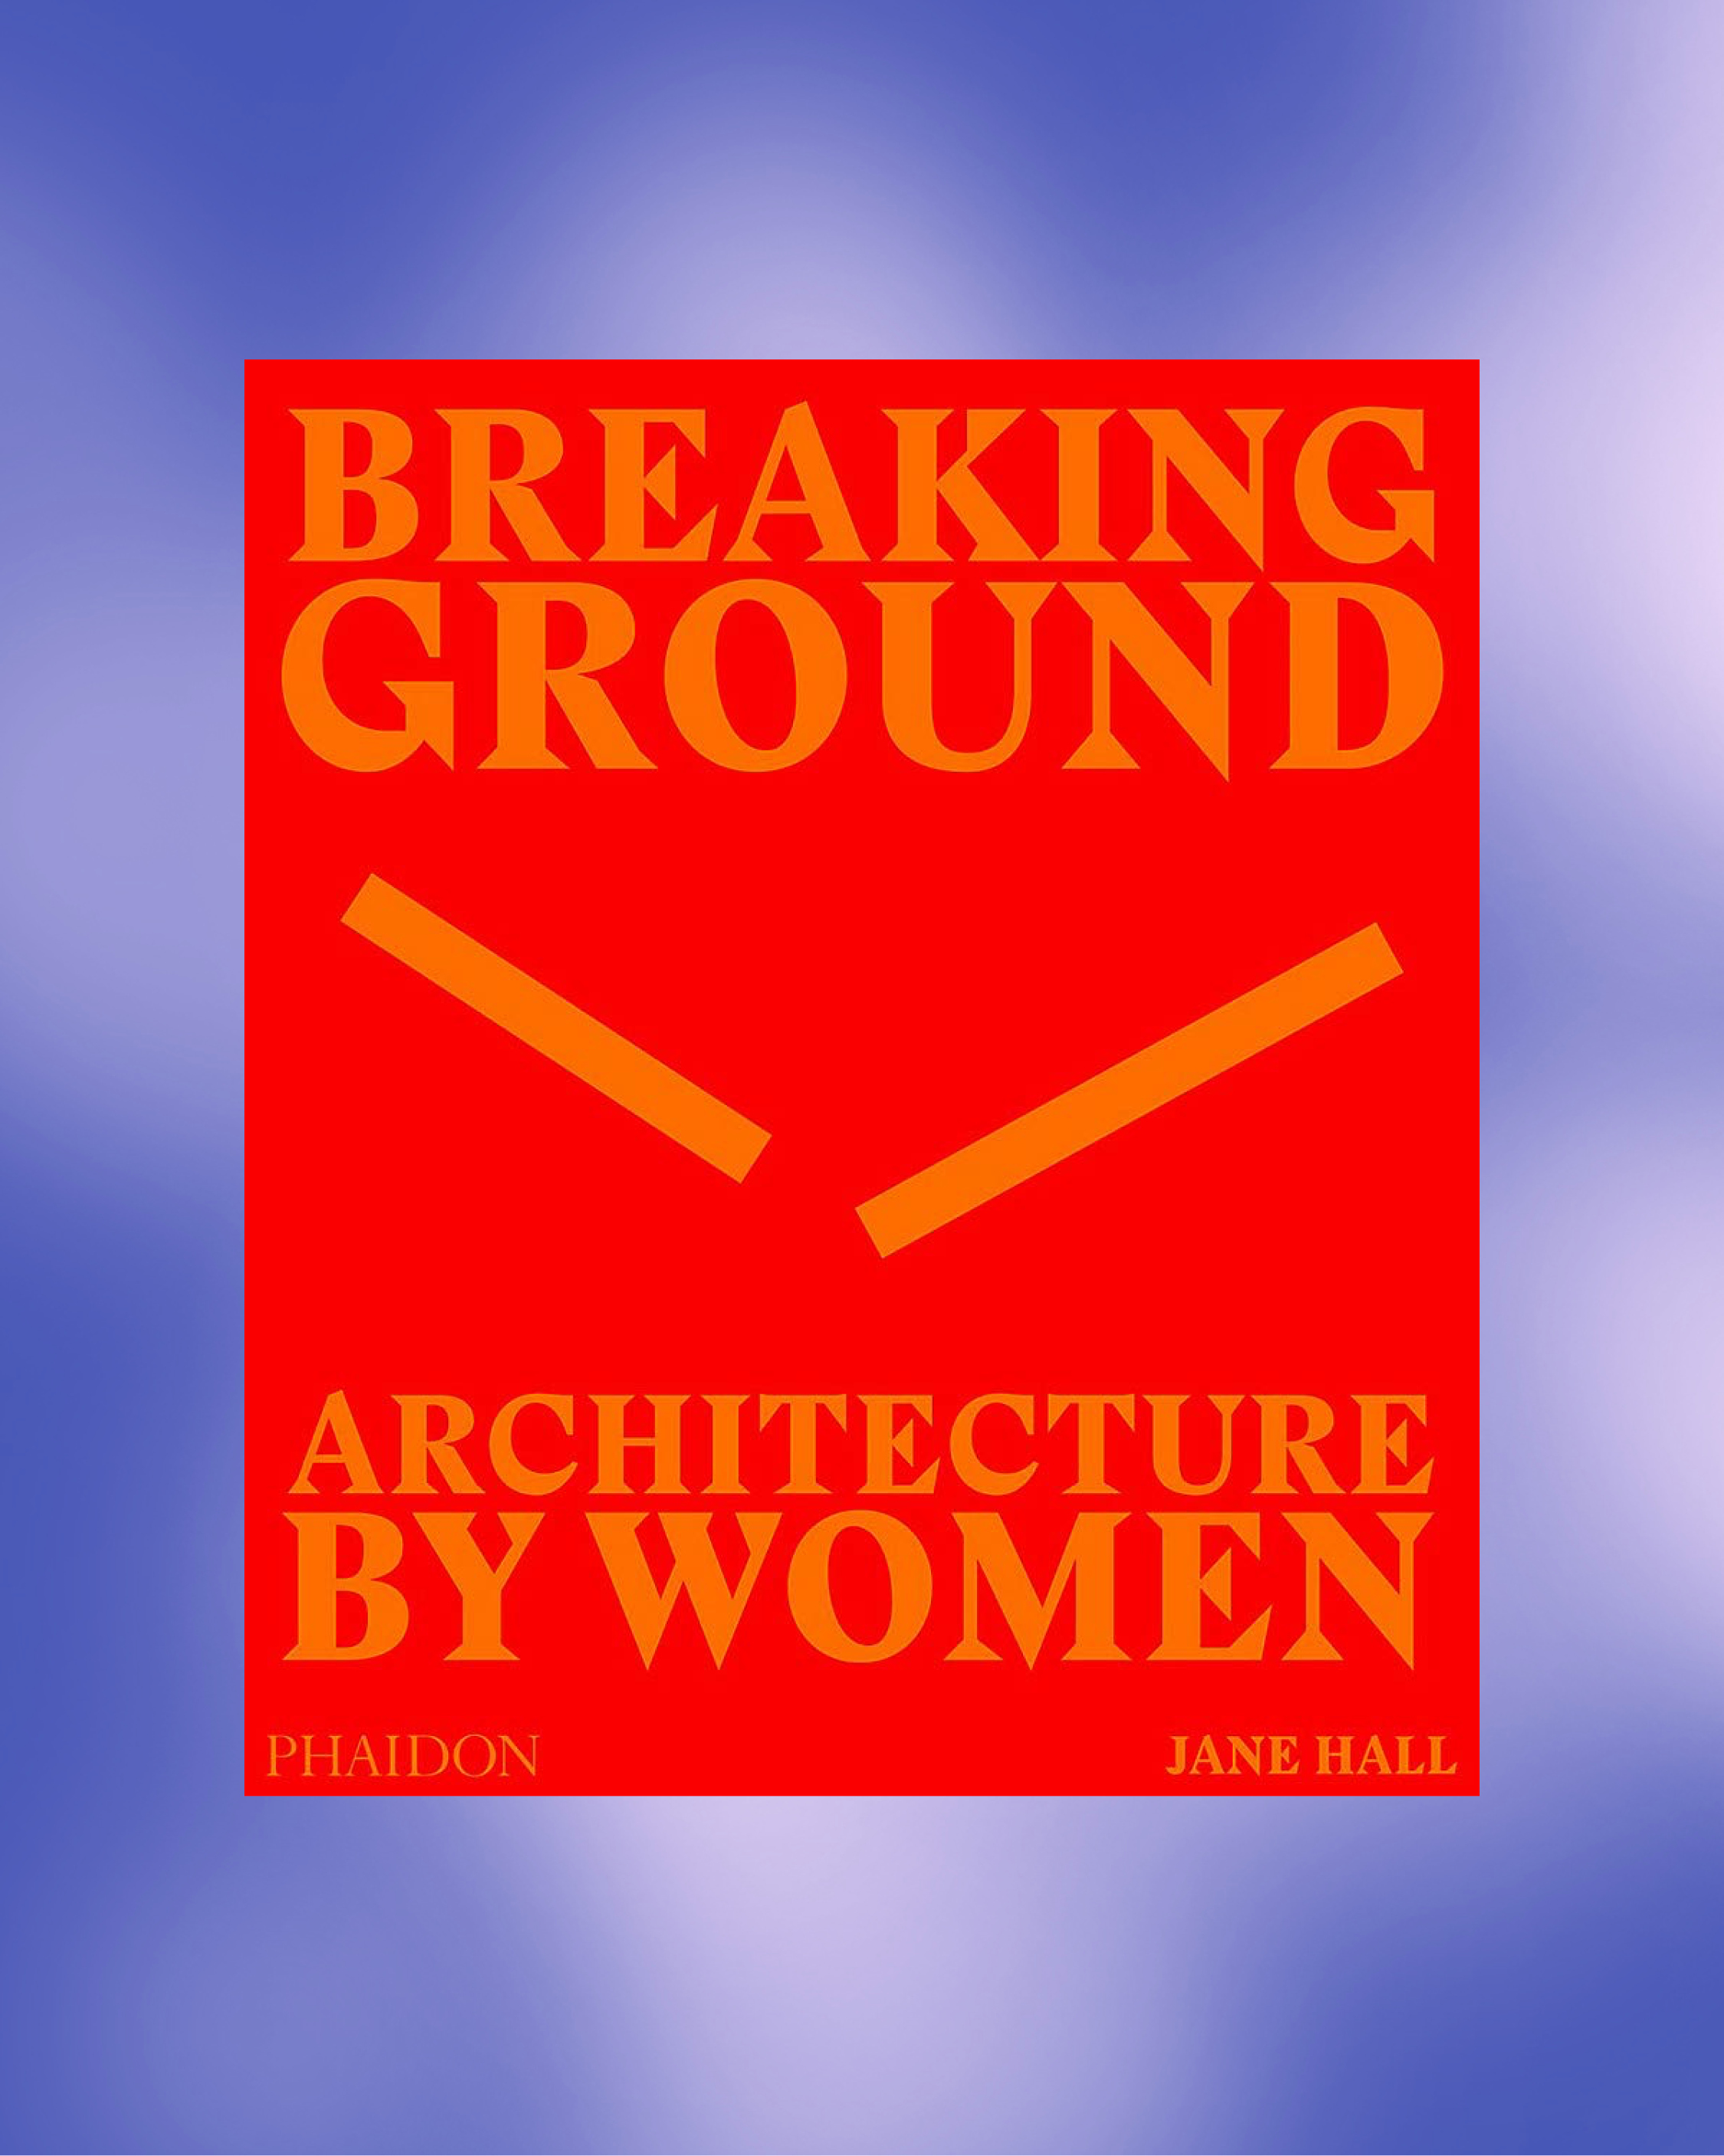 breaking ground book cover